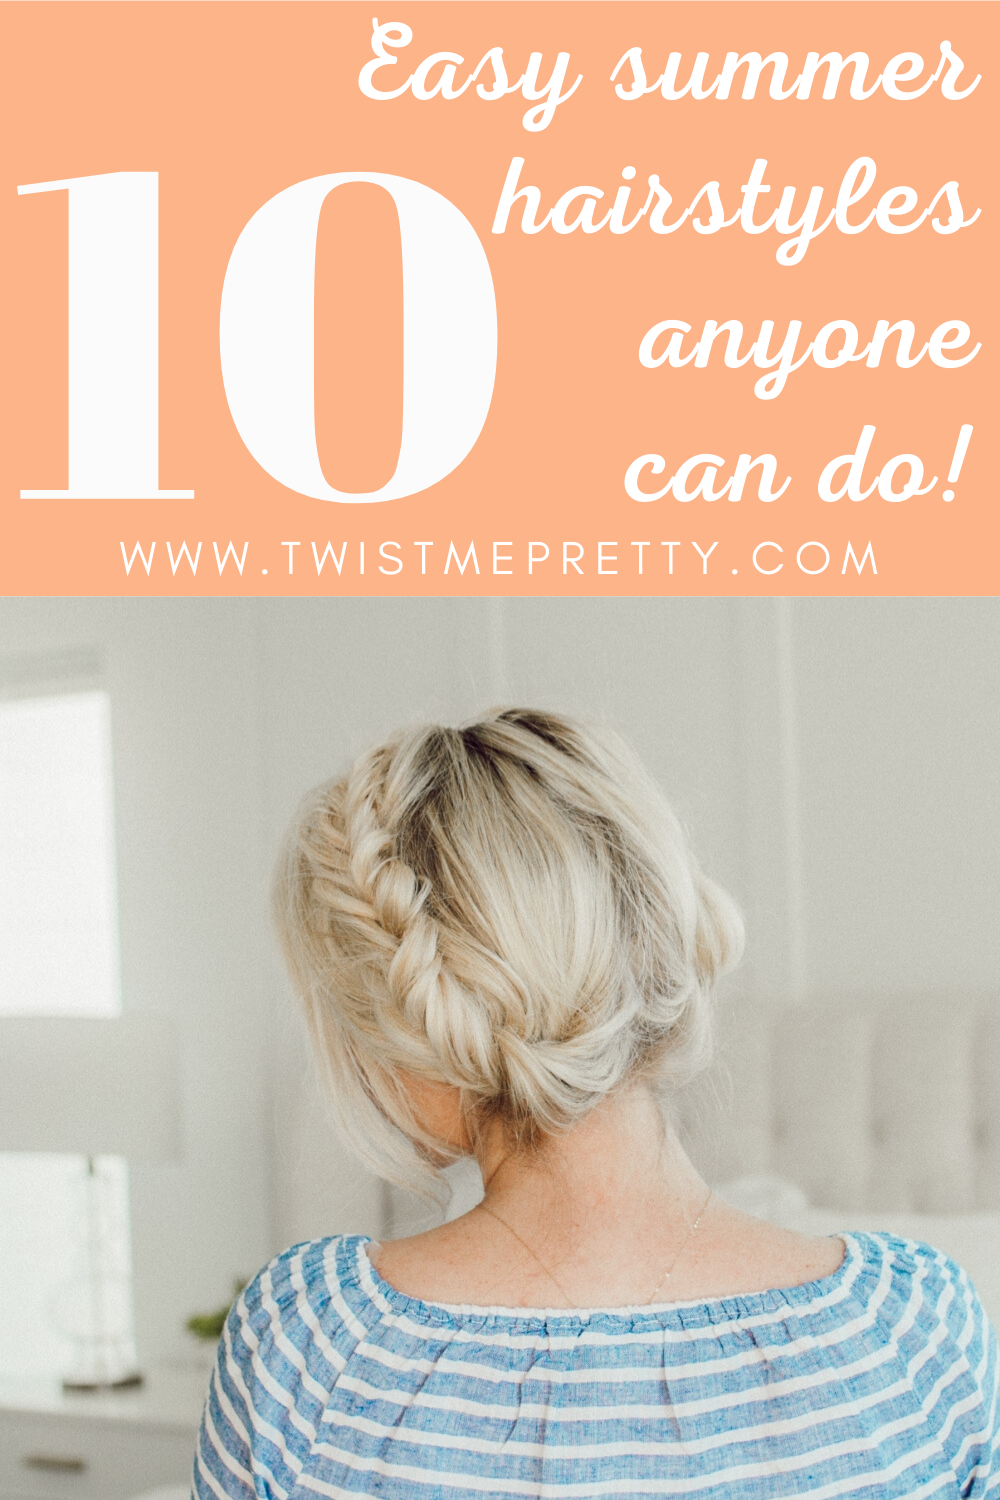 10 easy summer hairstyles anyone can do! www.twistmepretty.com